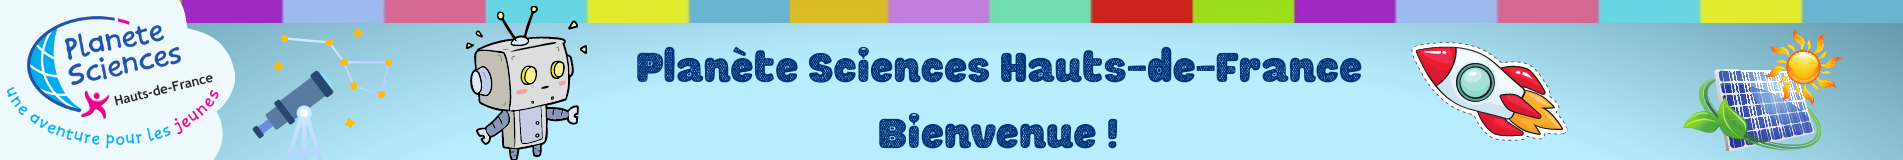 cropped-Planete-Sciences-Hauts-de-France-Bienvenue-.png